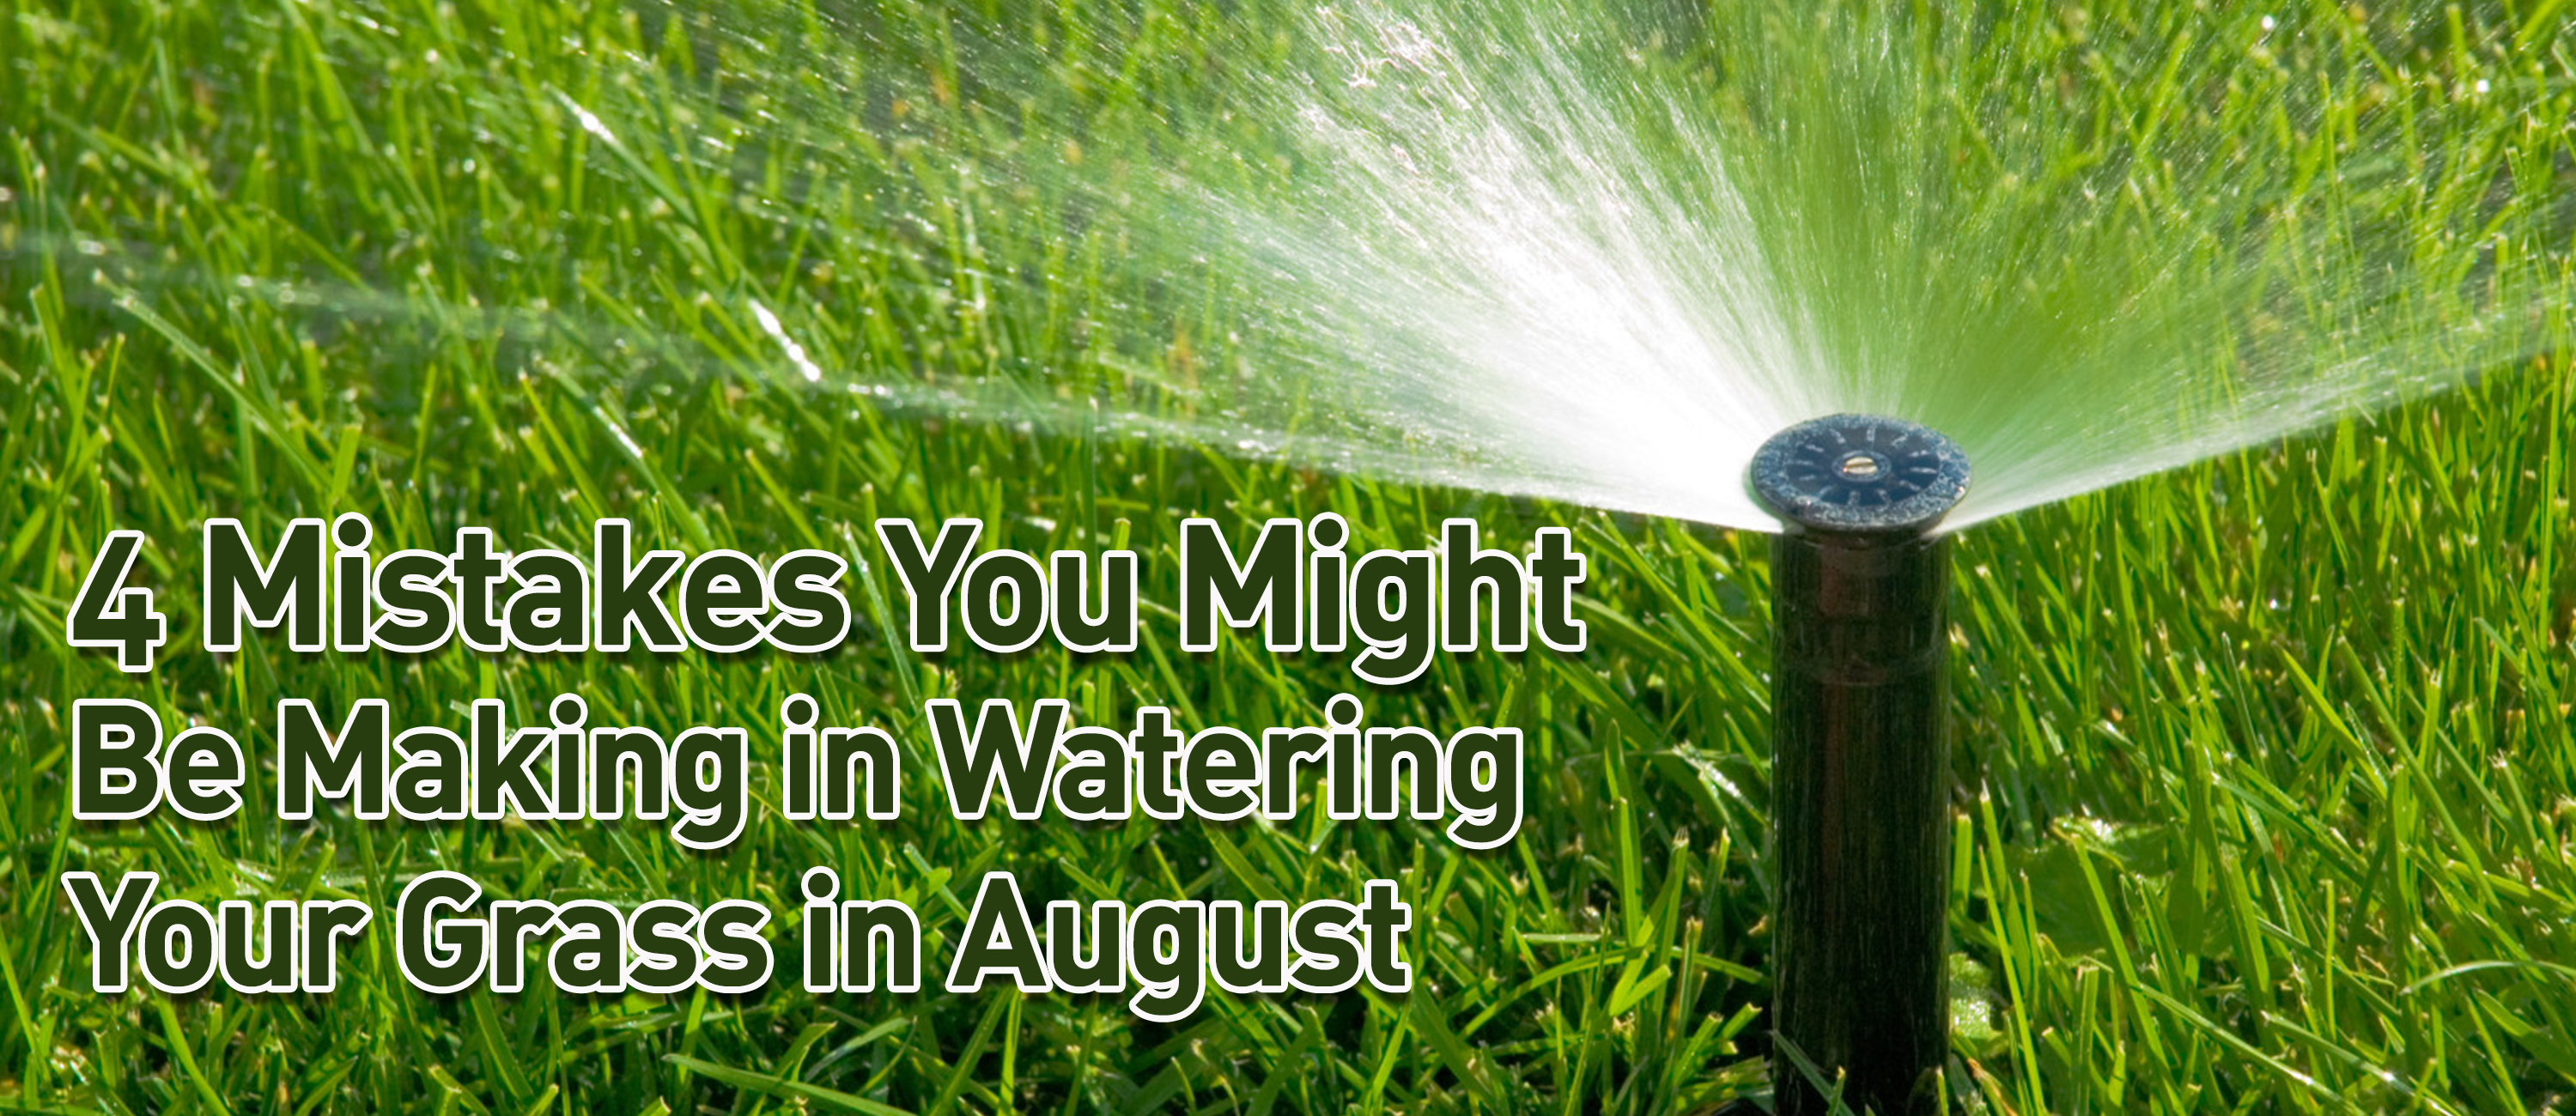 Watering Your Lawn In August